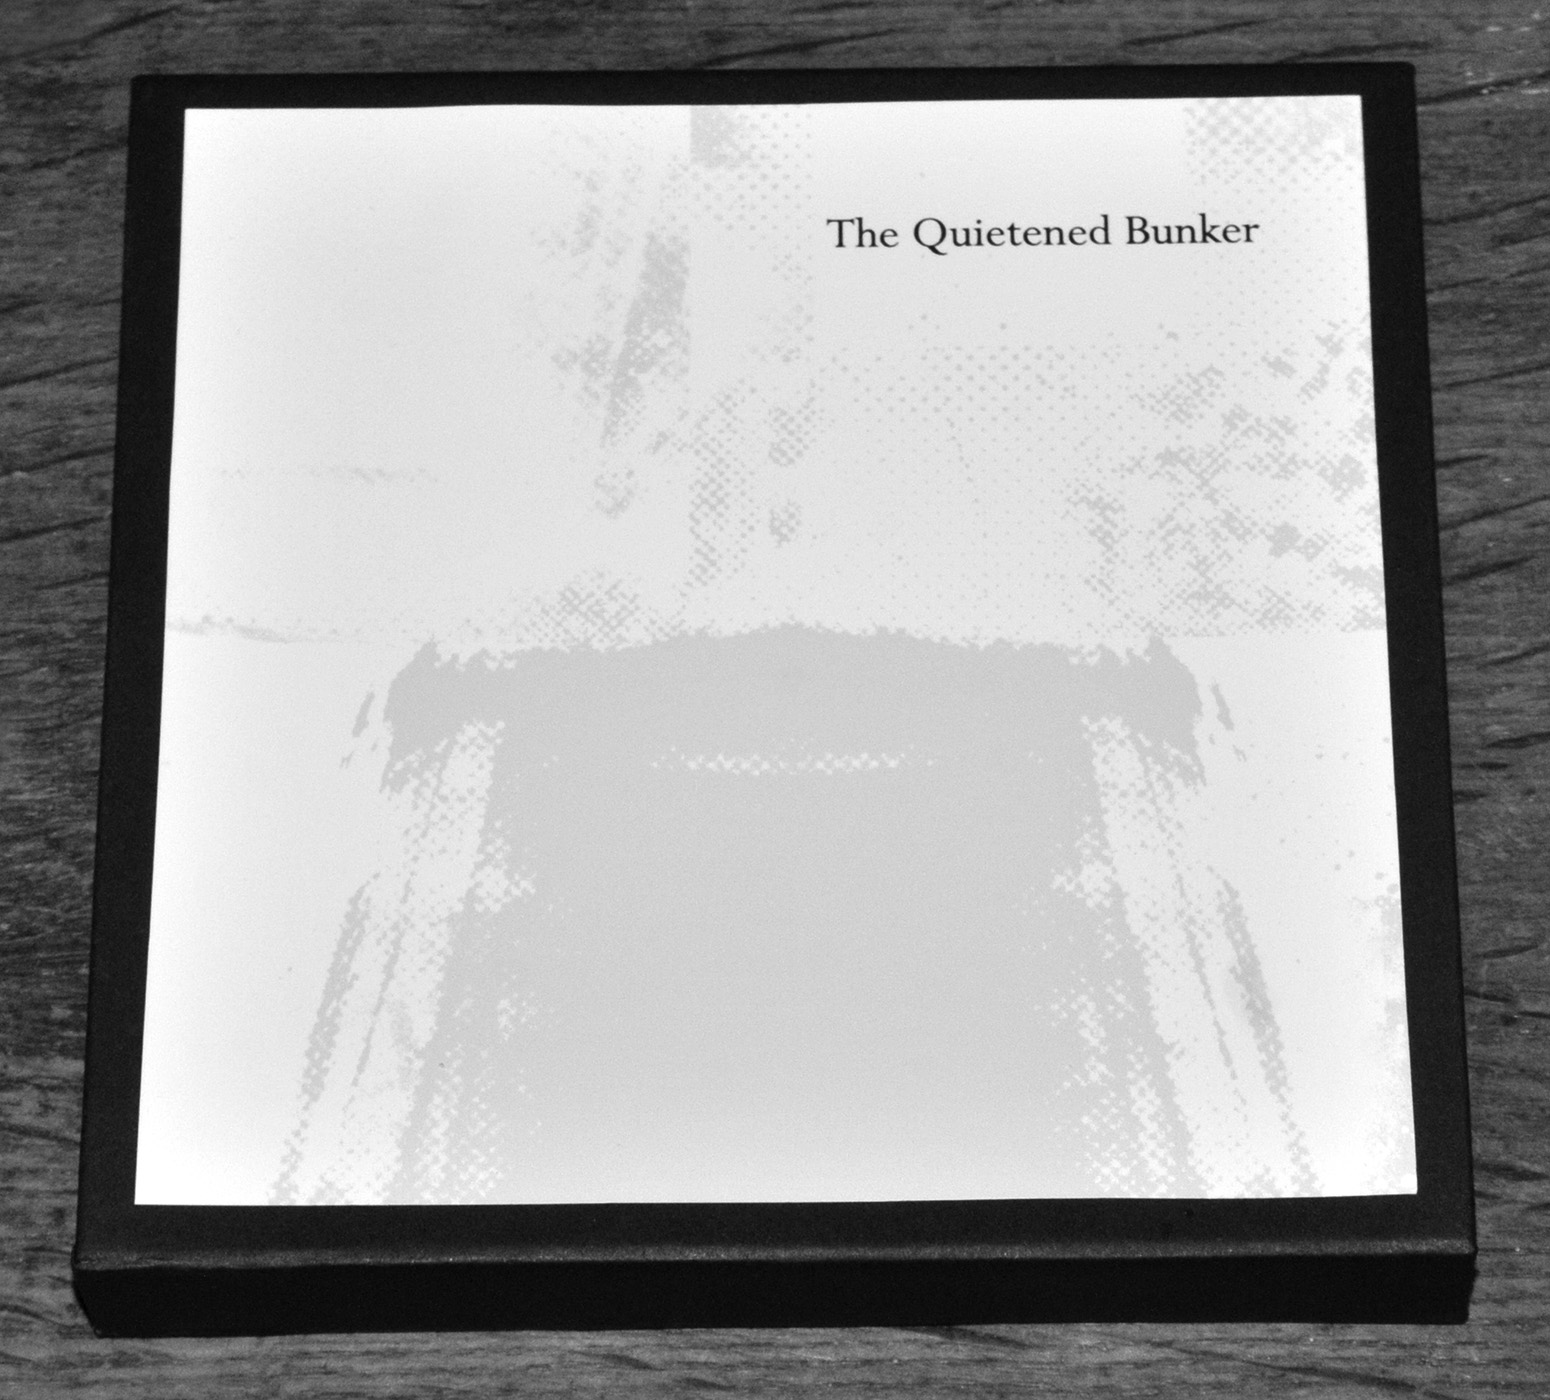 The-Quietened-Bunker-Night-Edition-front-A-Year-In-The-Country